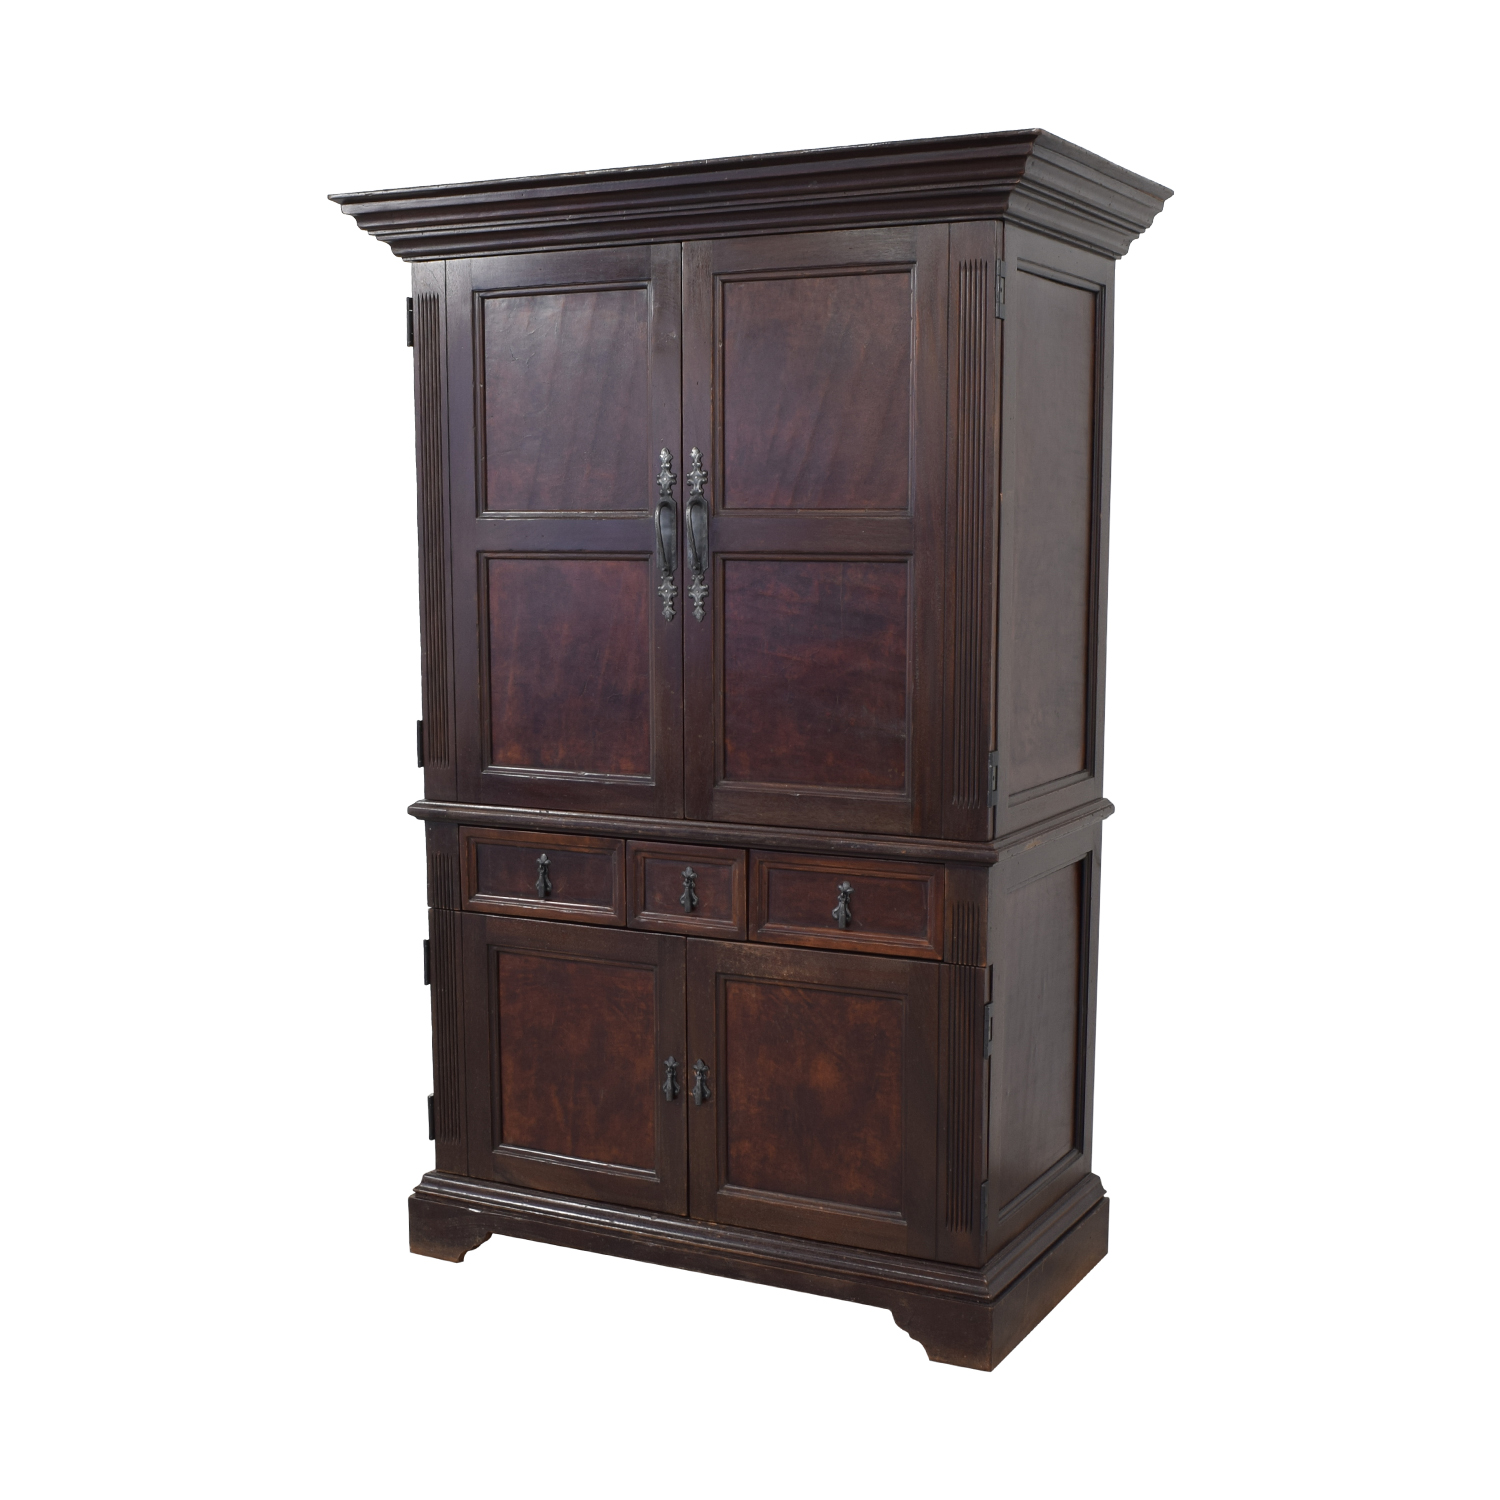 South Cone Furniture South Cone Furniture Large Armoire discount